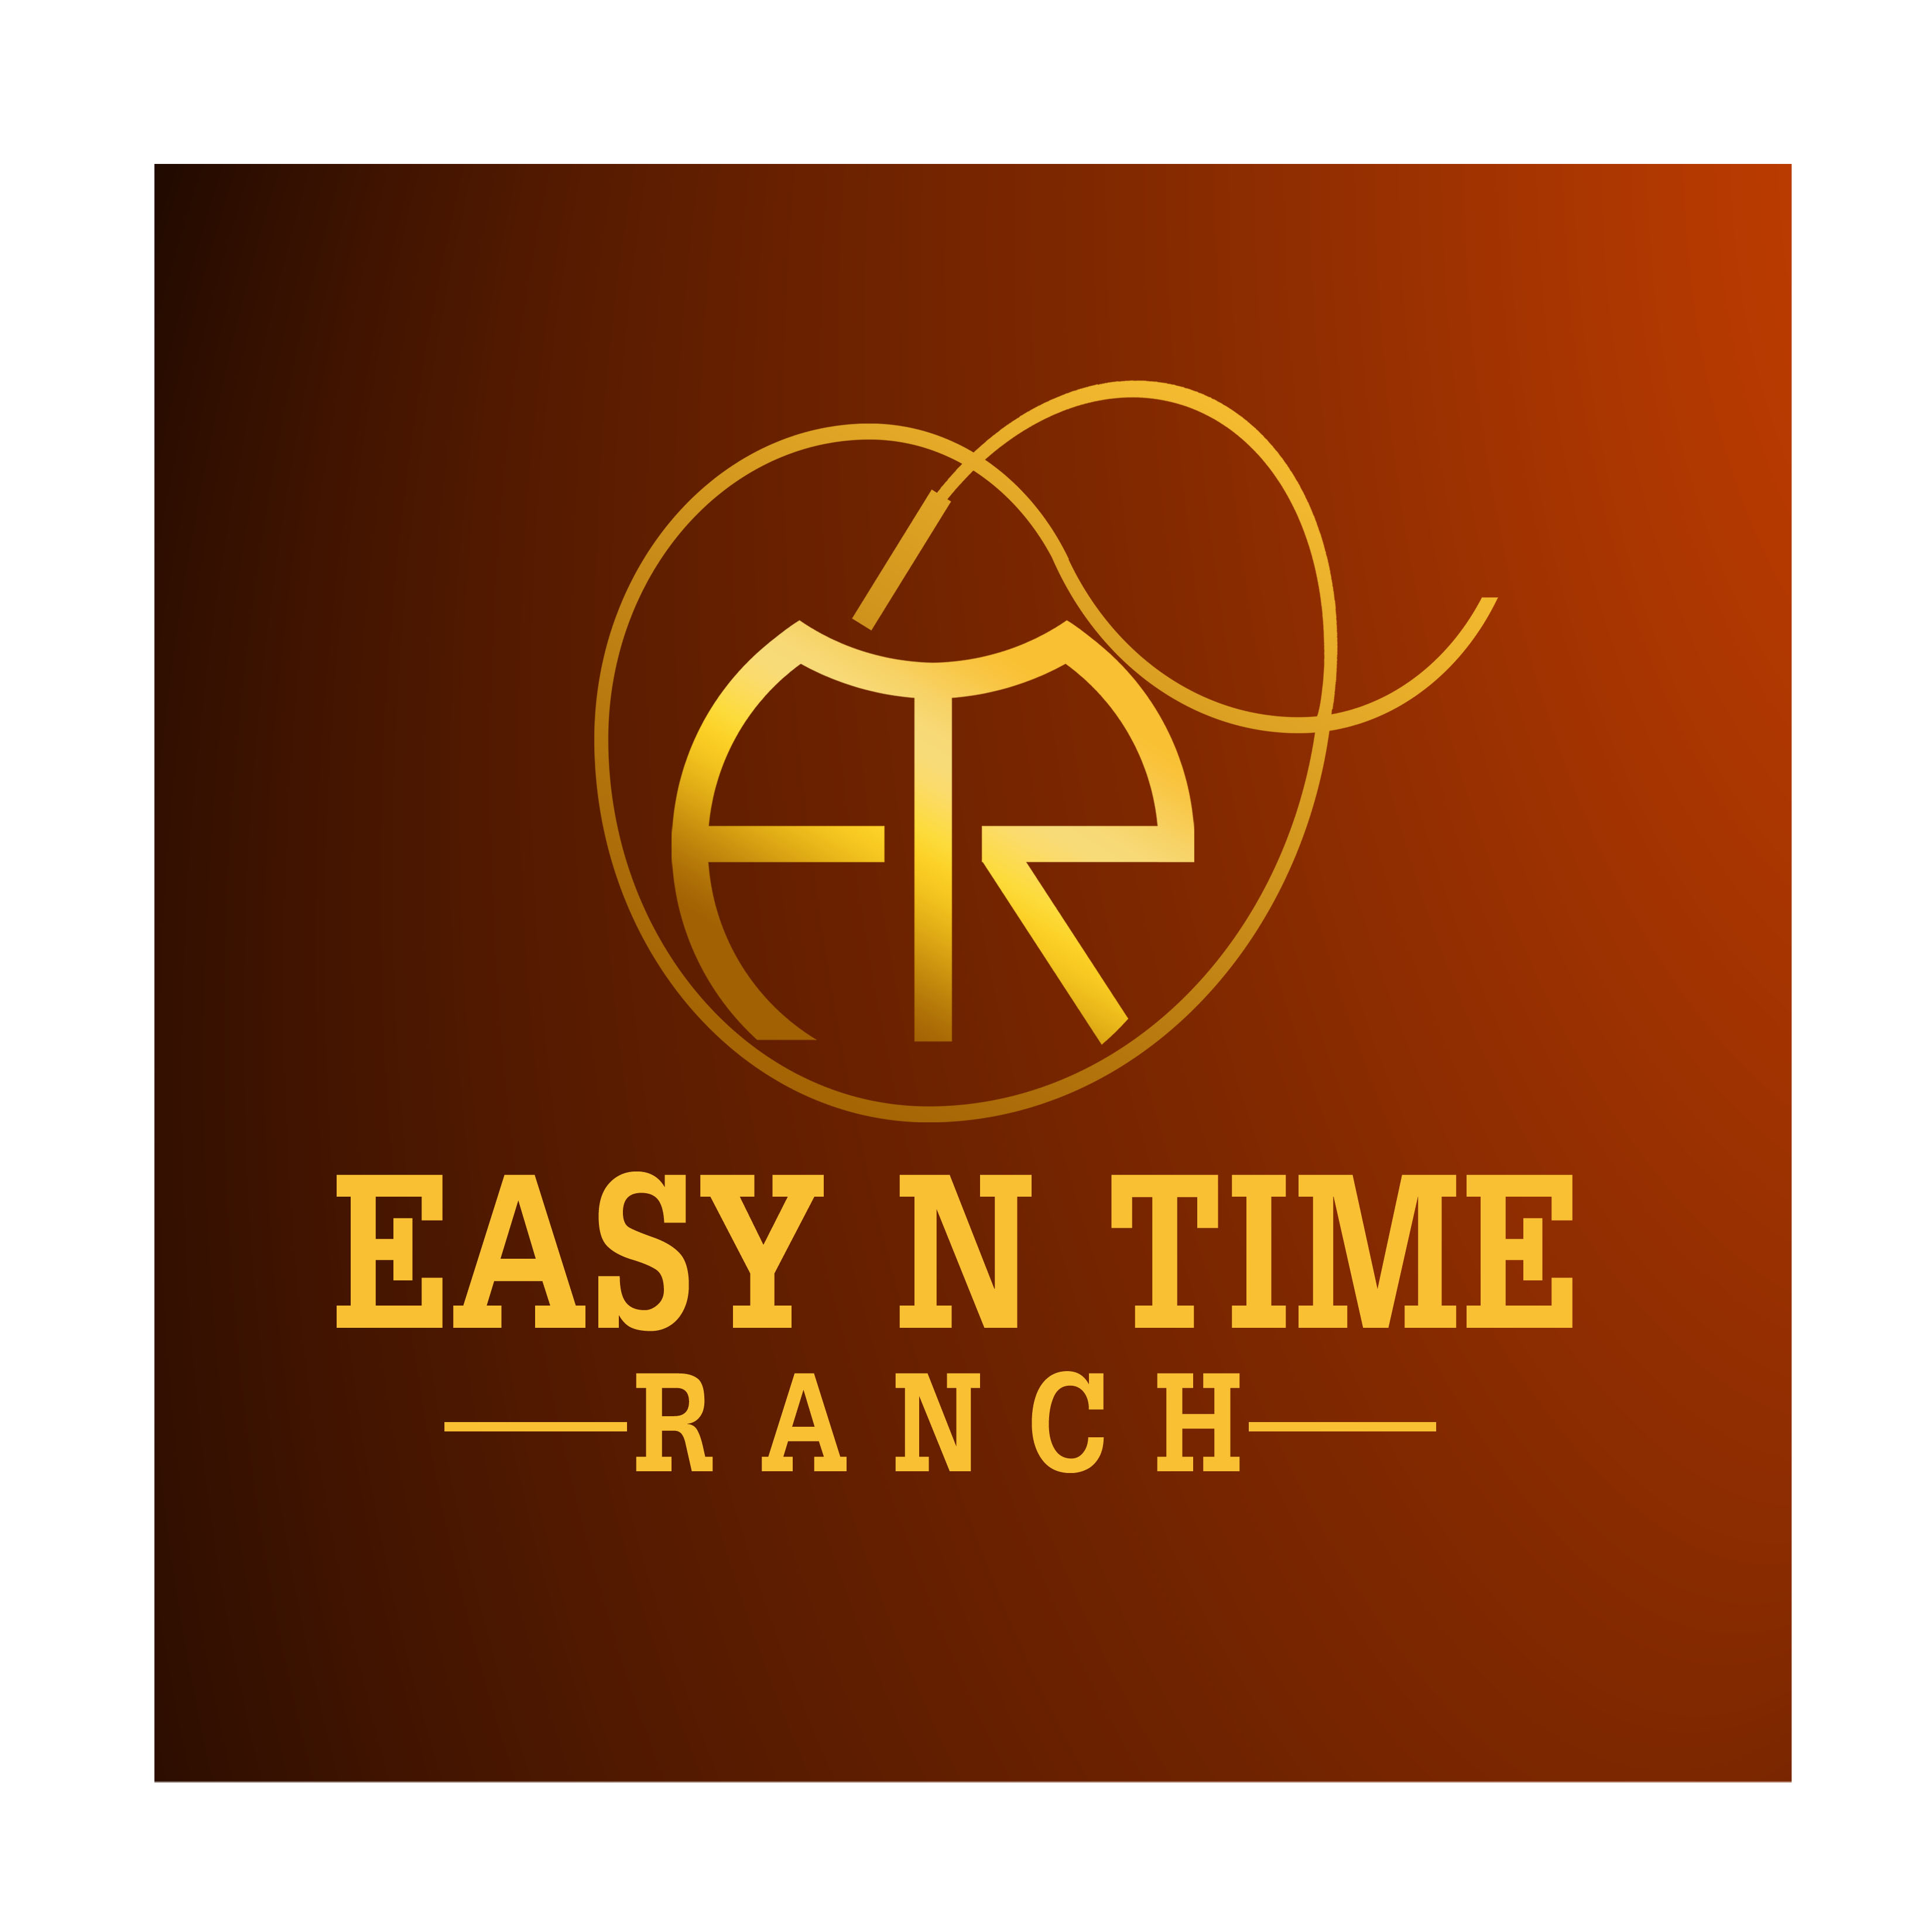 Logo Design by Allan Esclamado - Entry No. 9 in the Logo Design Contest Artistic Logo Design for Easy N Time Ranch.